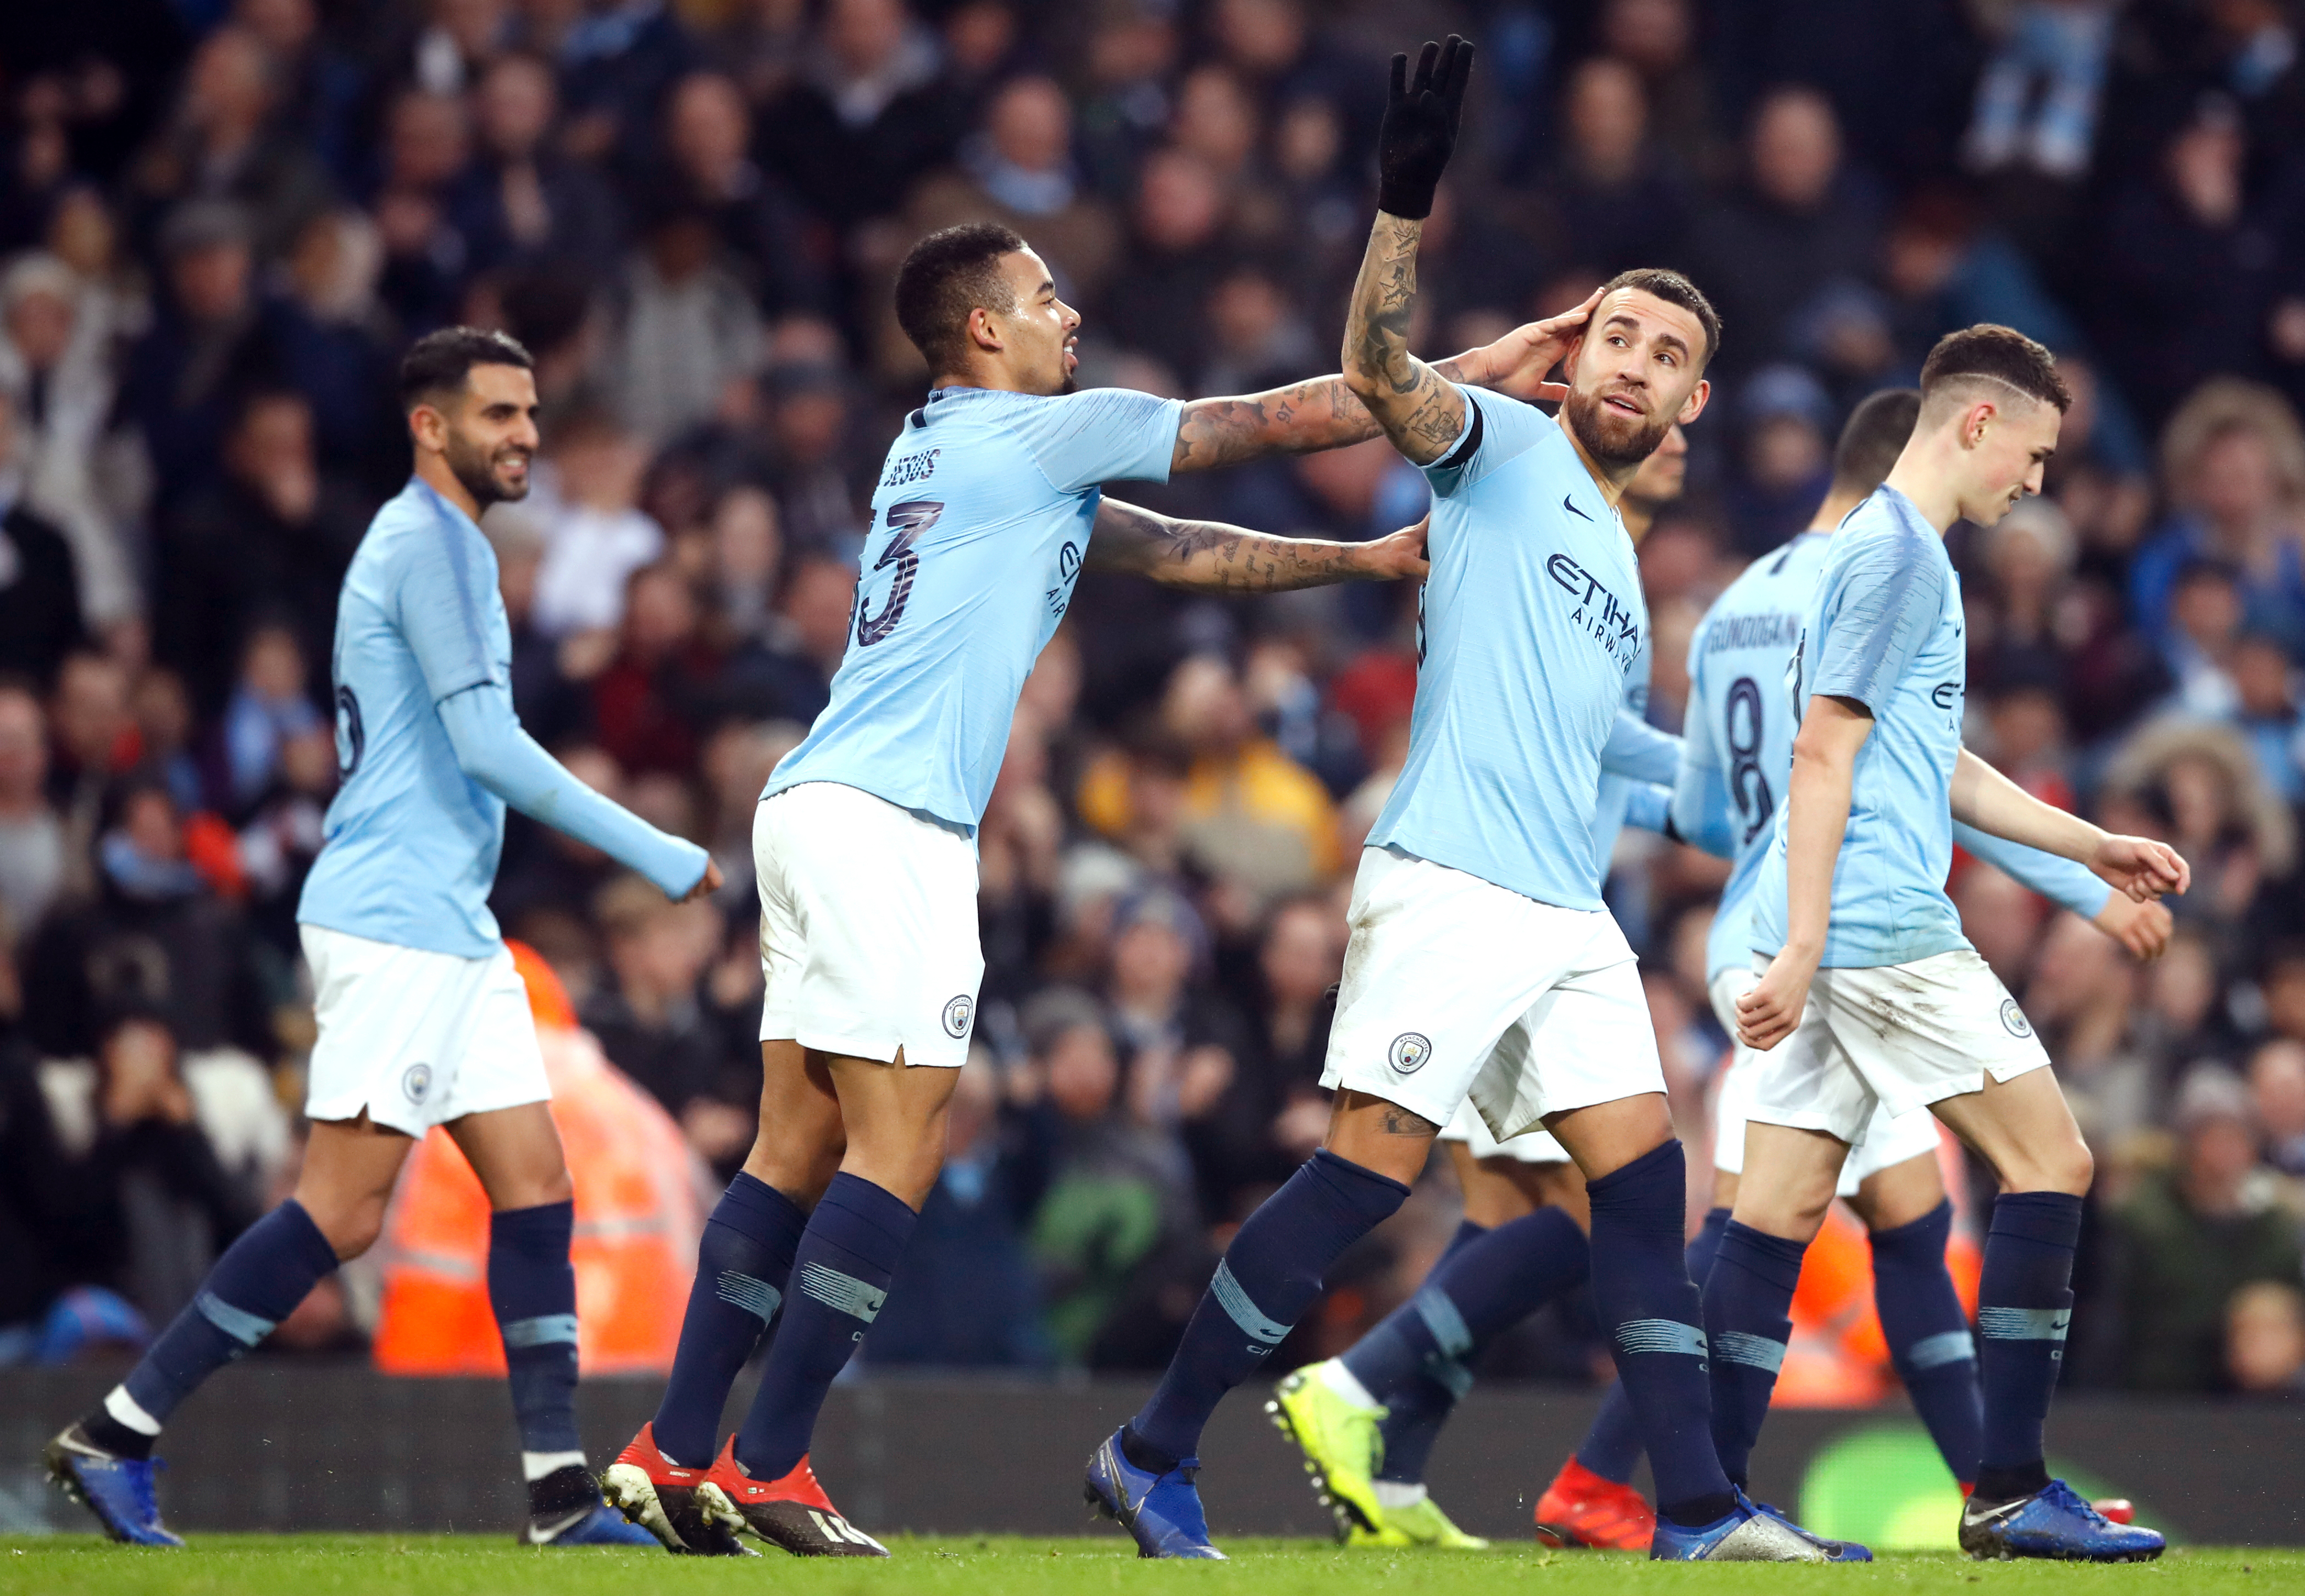 Manchester City's Nicolas Otamendi (second right) celebrates scoring his side's sixth goal of the game during the Emirates FA Cup, third round match at the Etihad Stadium, Manchester.